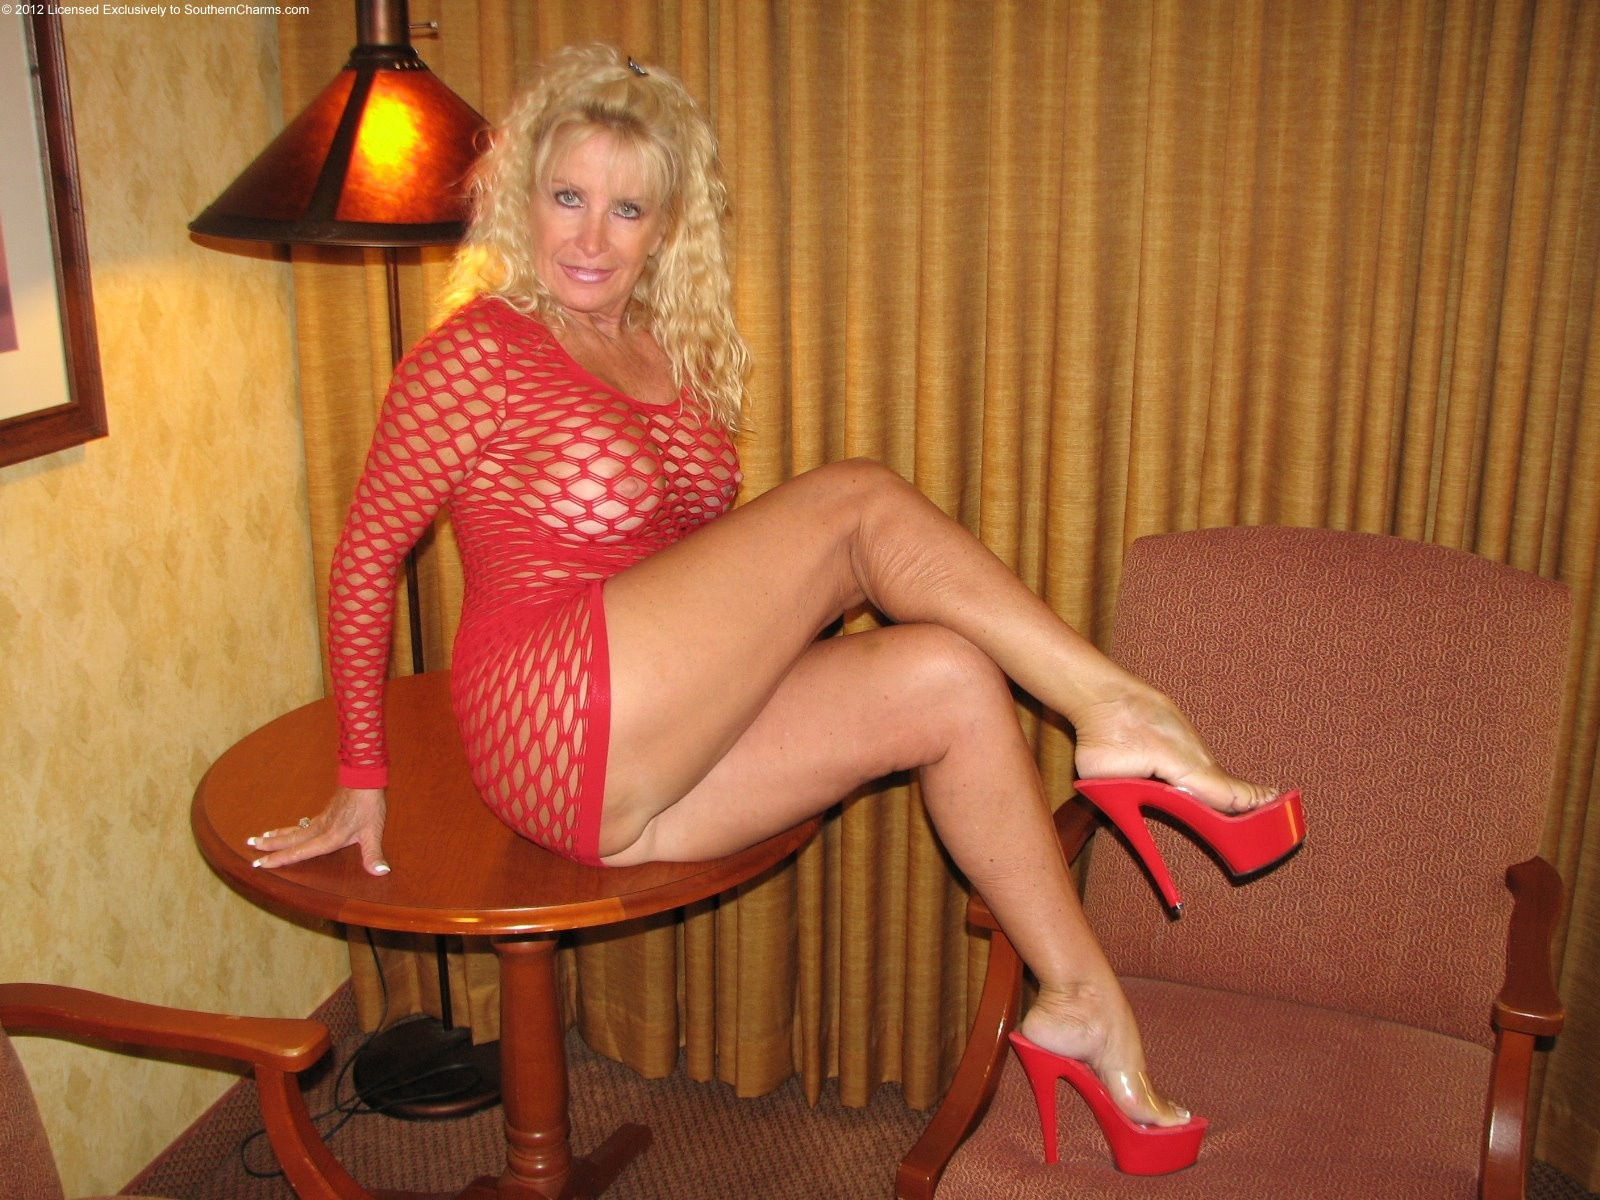 Southern Milfs 35163  Southern Charms Golden Girl-9159